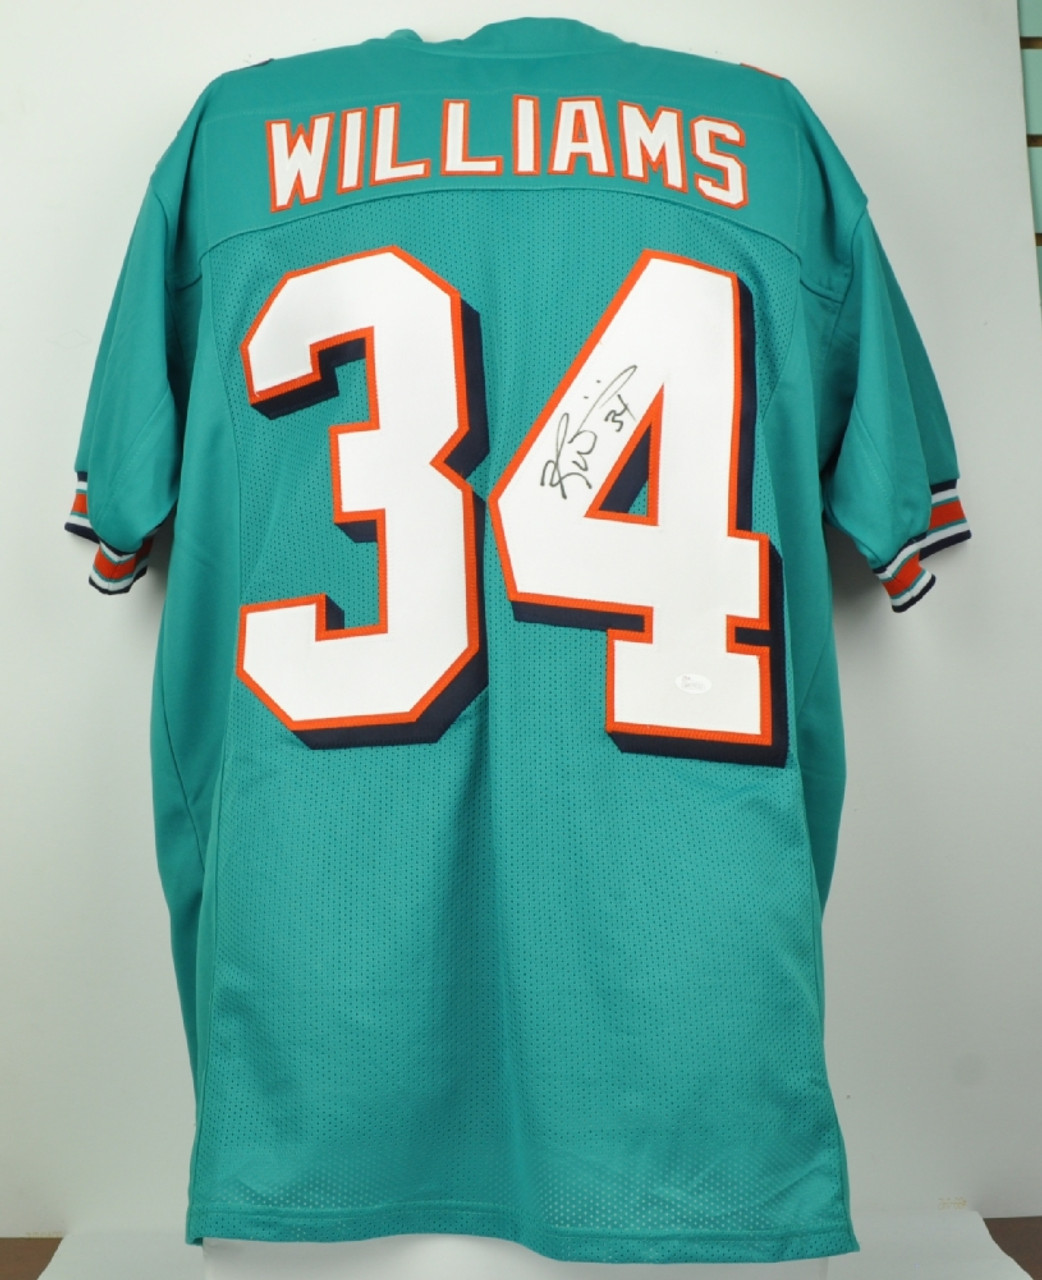 sale retailer b3214 59b80 NFL Miami Dolphins Running Back Ricky Williams 34 Signed Autographed XL  Teal Throwback Replica Jersey JSA Mens